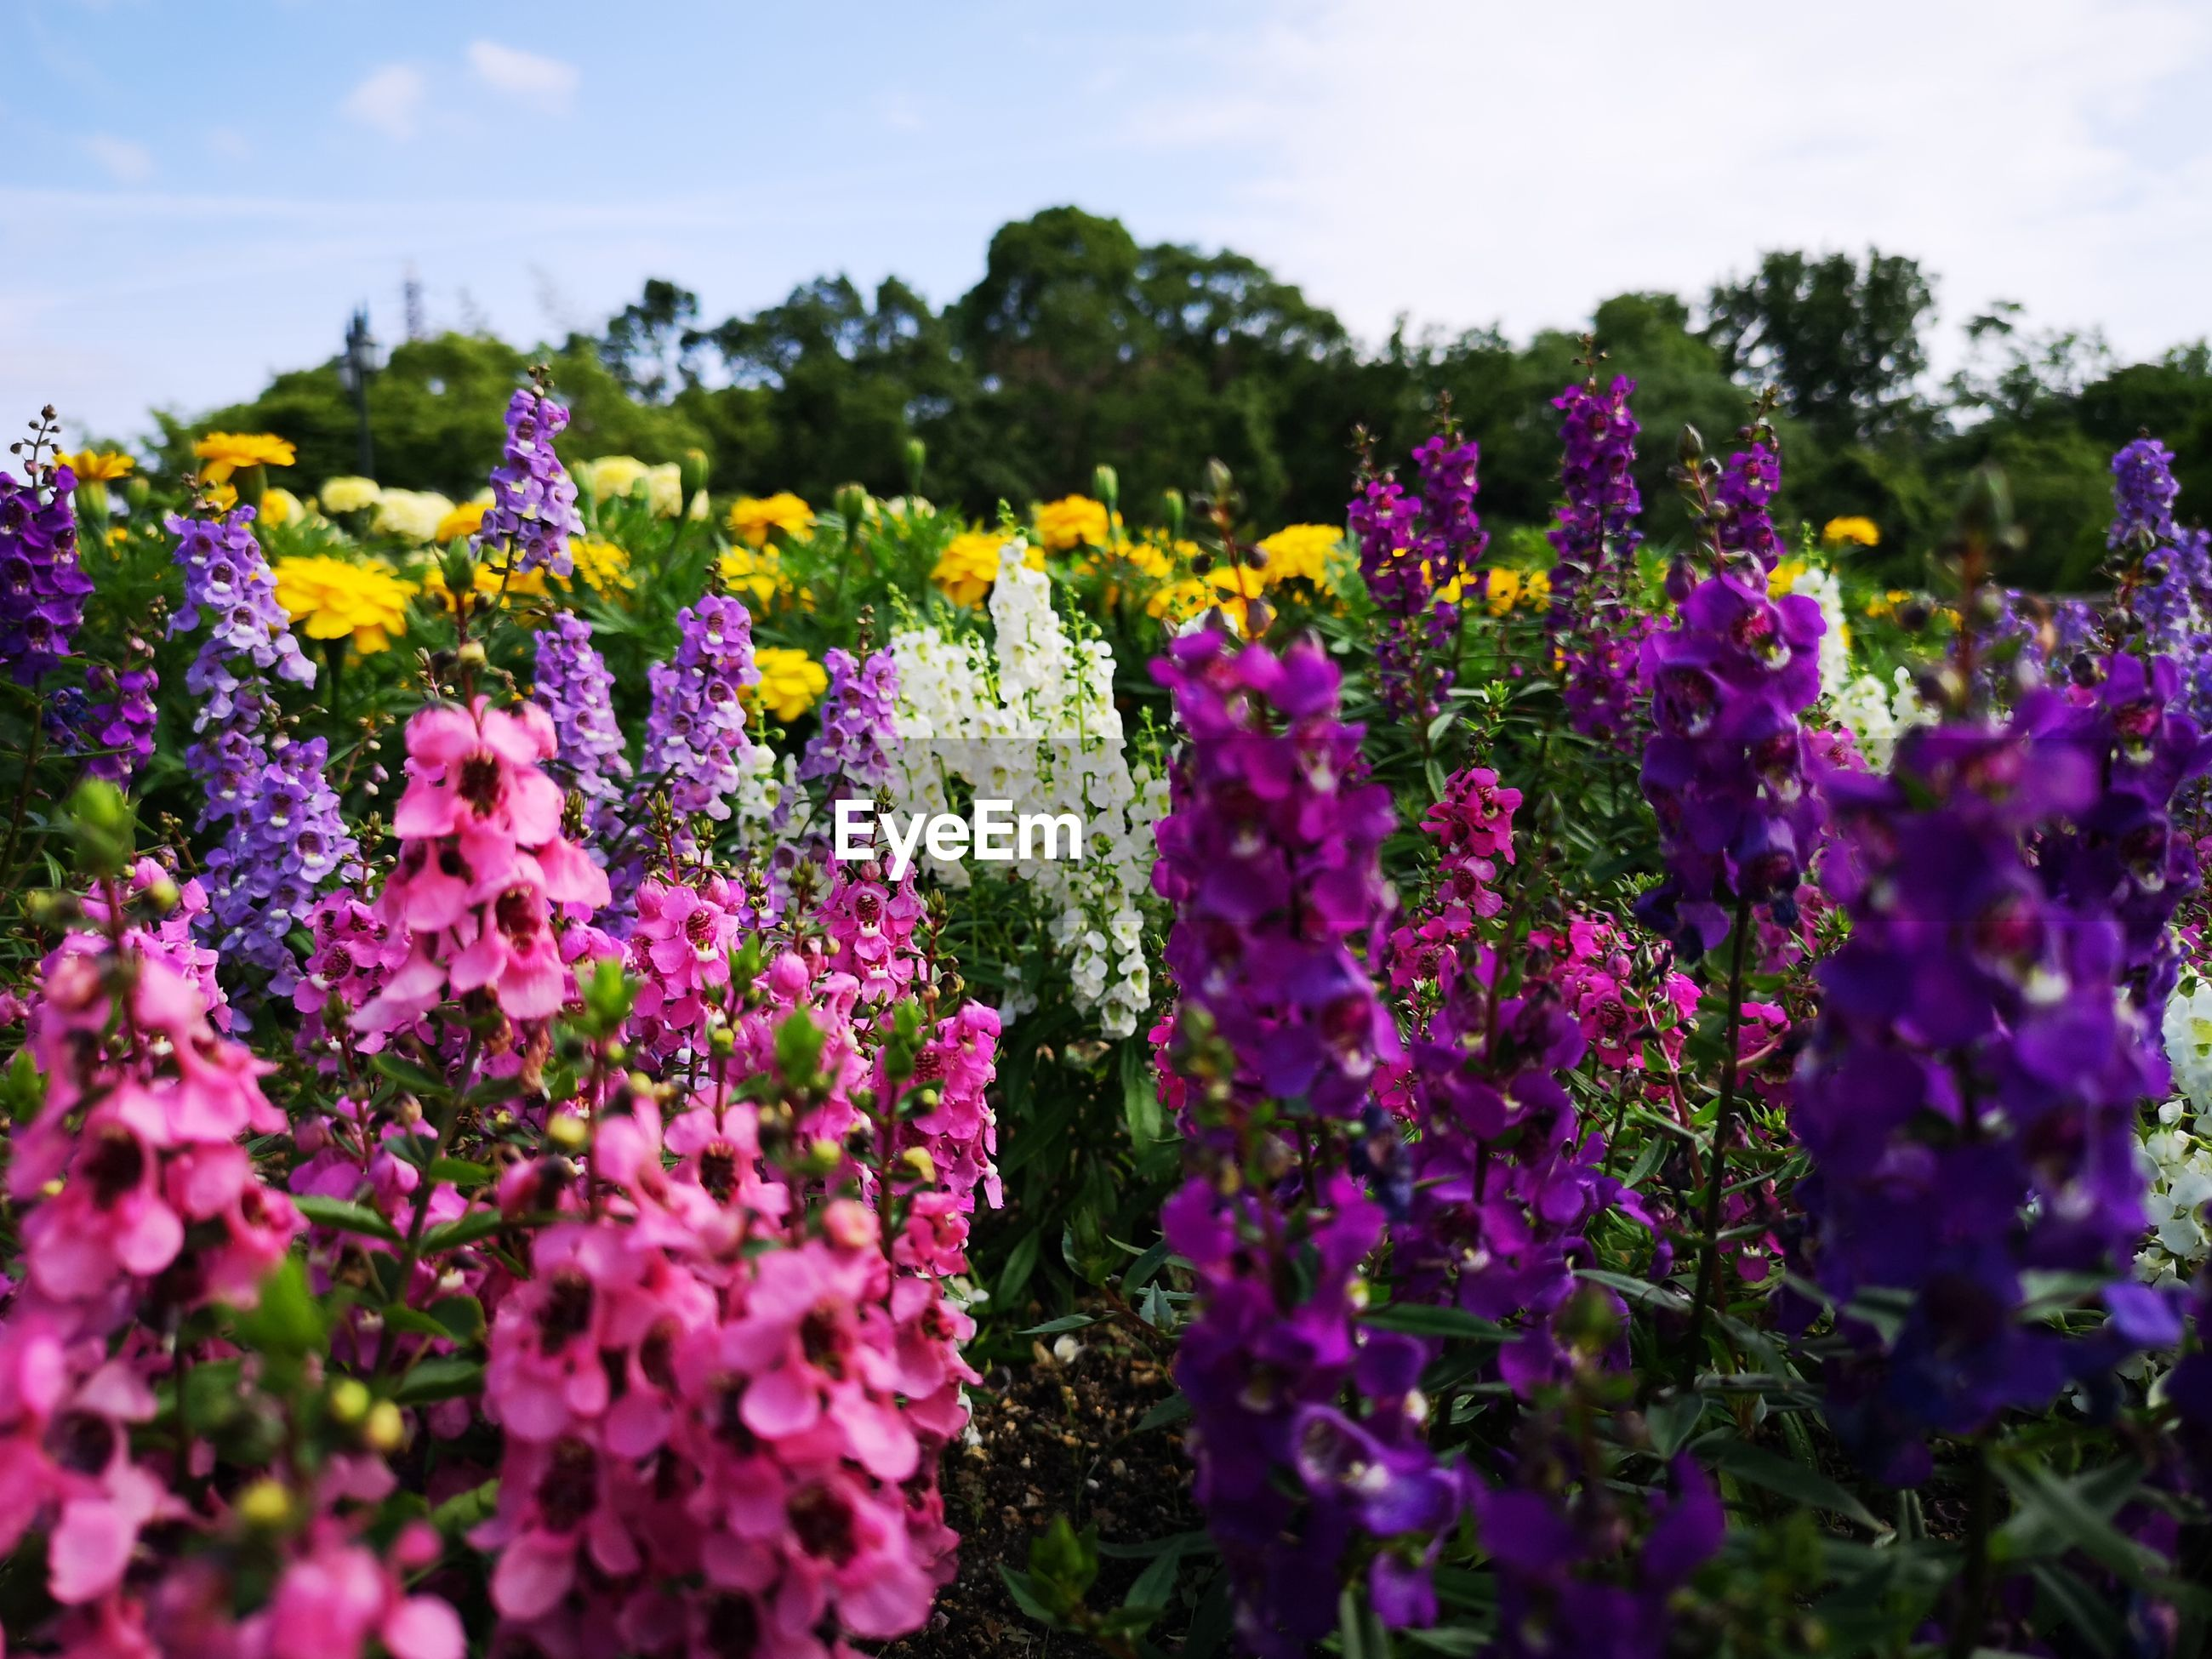 Close-up of fresh purple flowers in field against sky